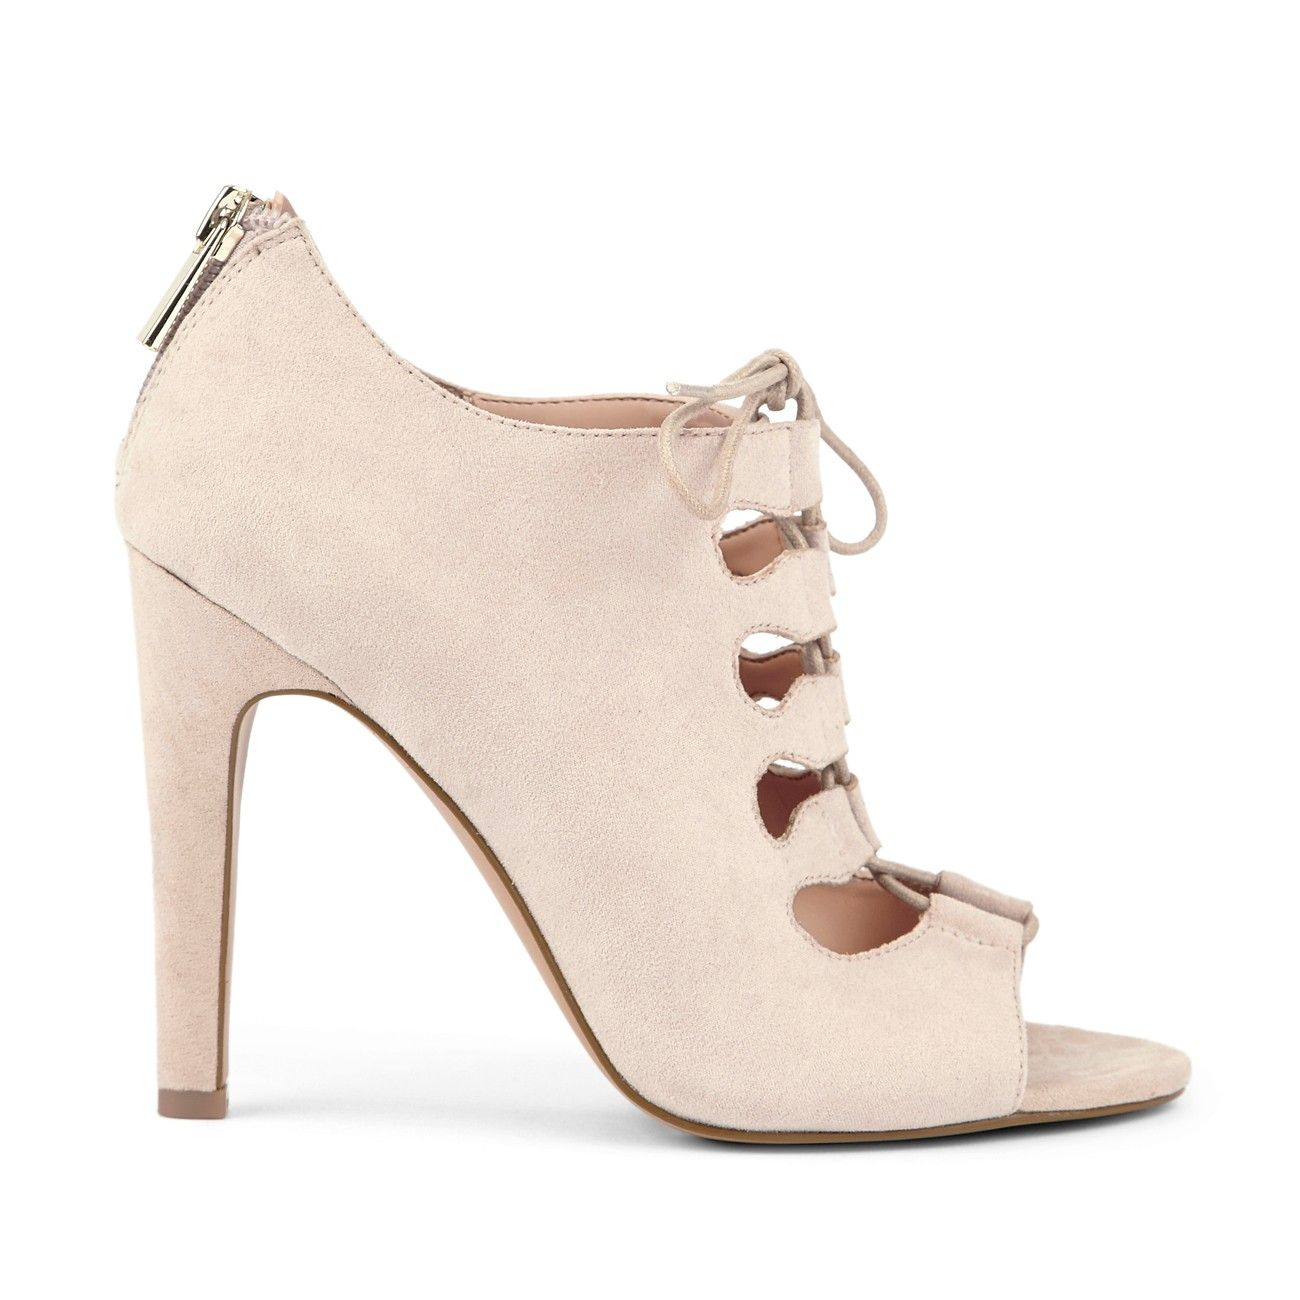 Mandee, Lace Up Heel/ Color: Nude ♥